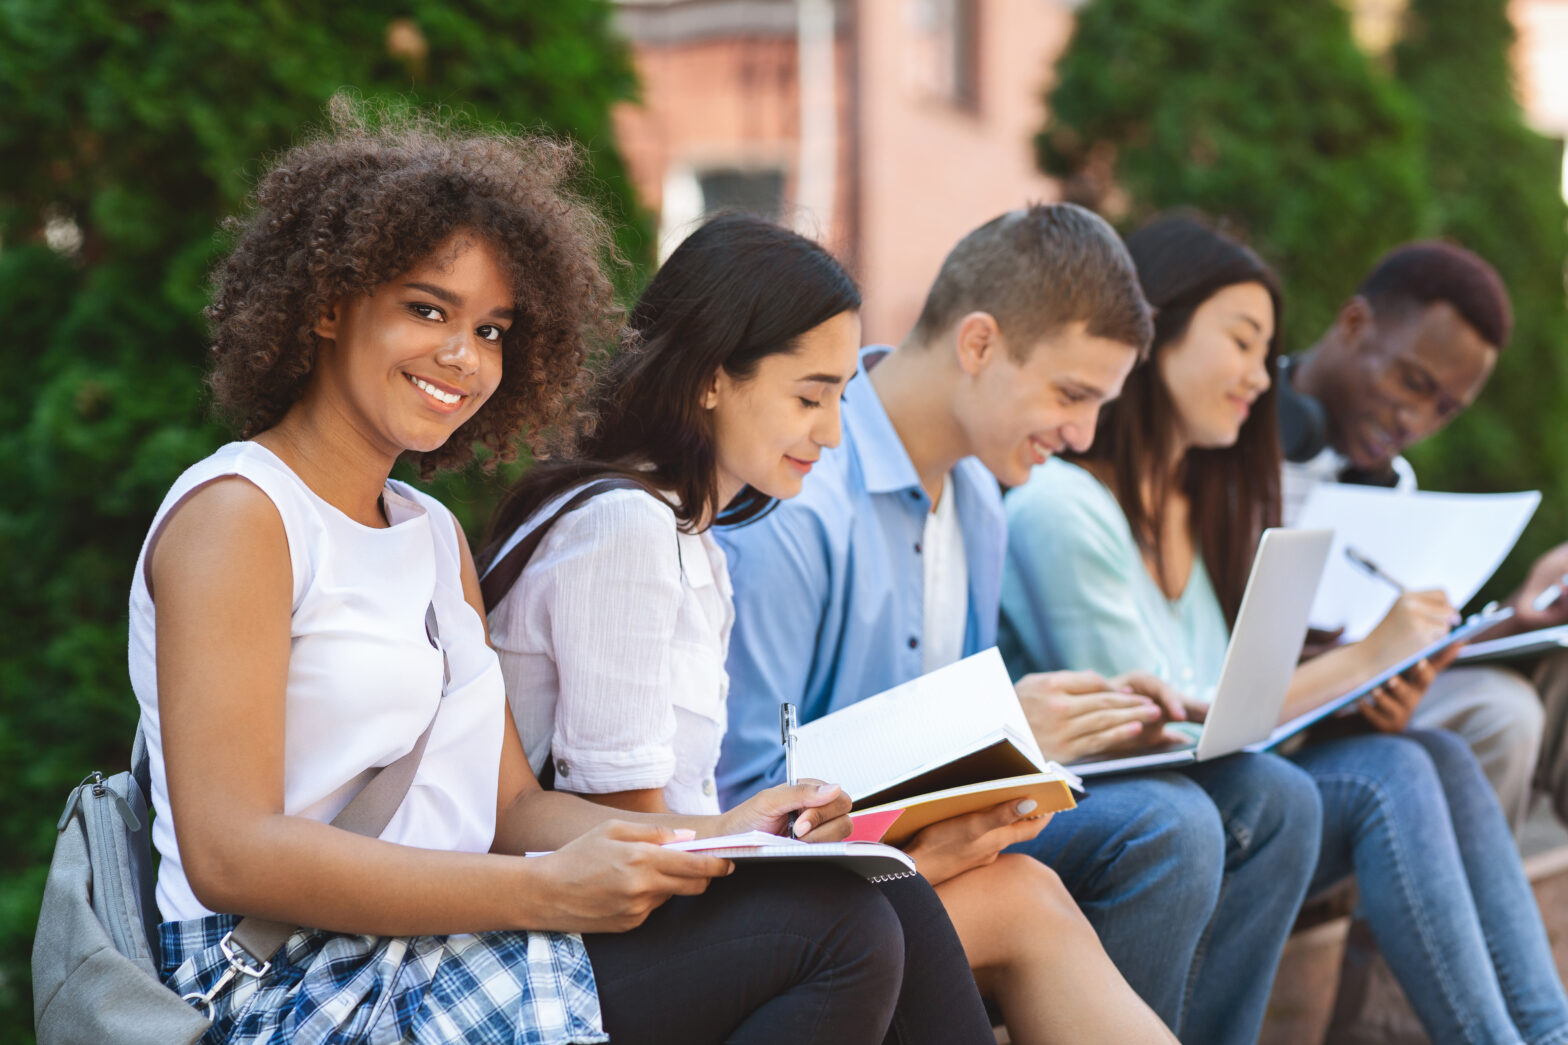 International Student Policies: A Failing Grade for the United States